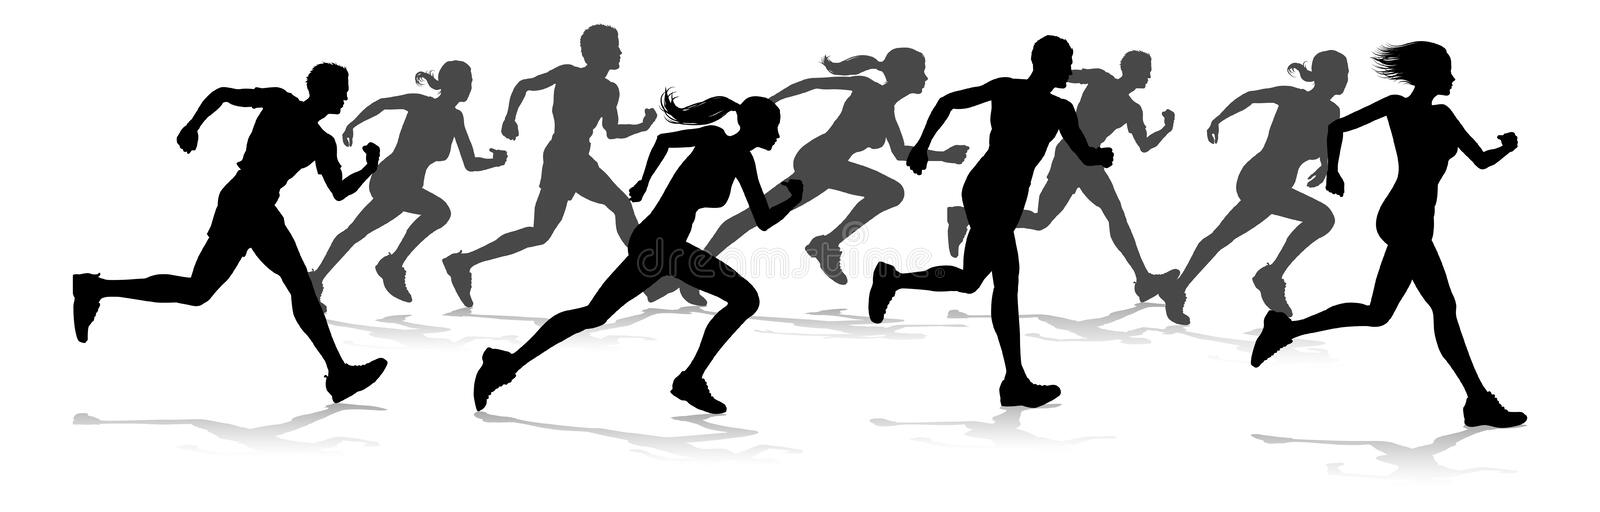 Runners Race Track and Field Silhouettes royalty free illustration